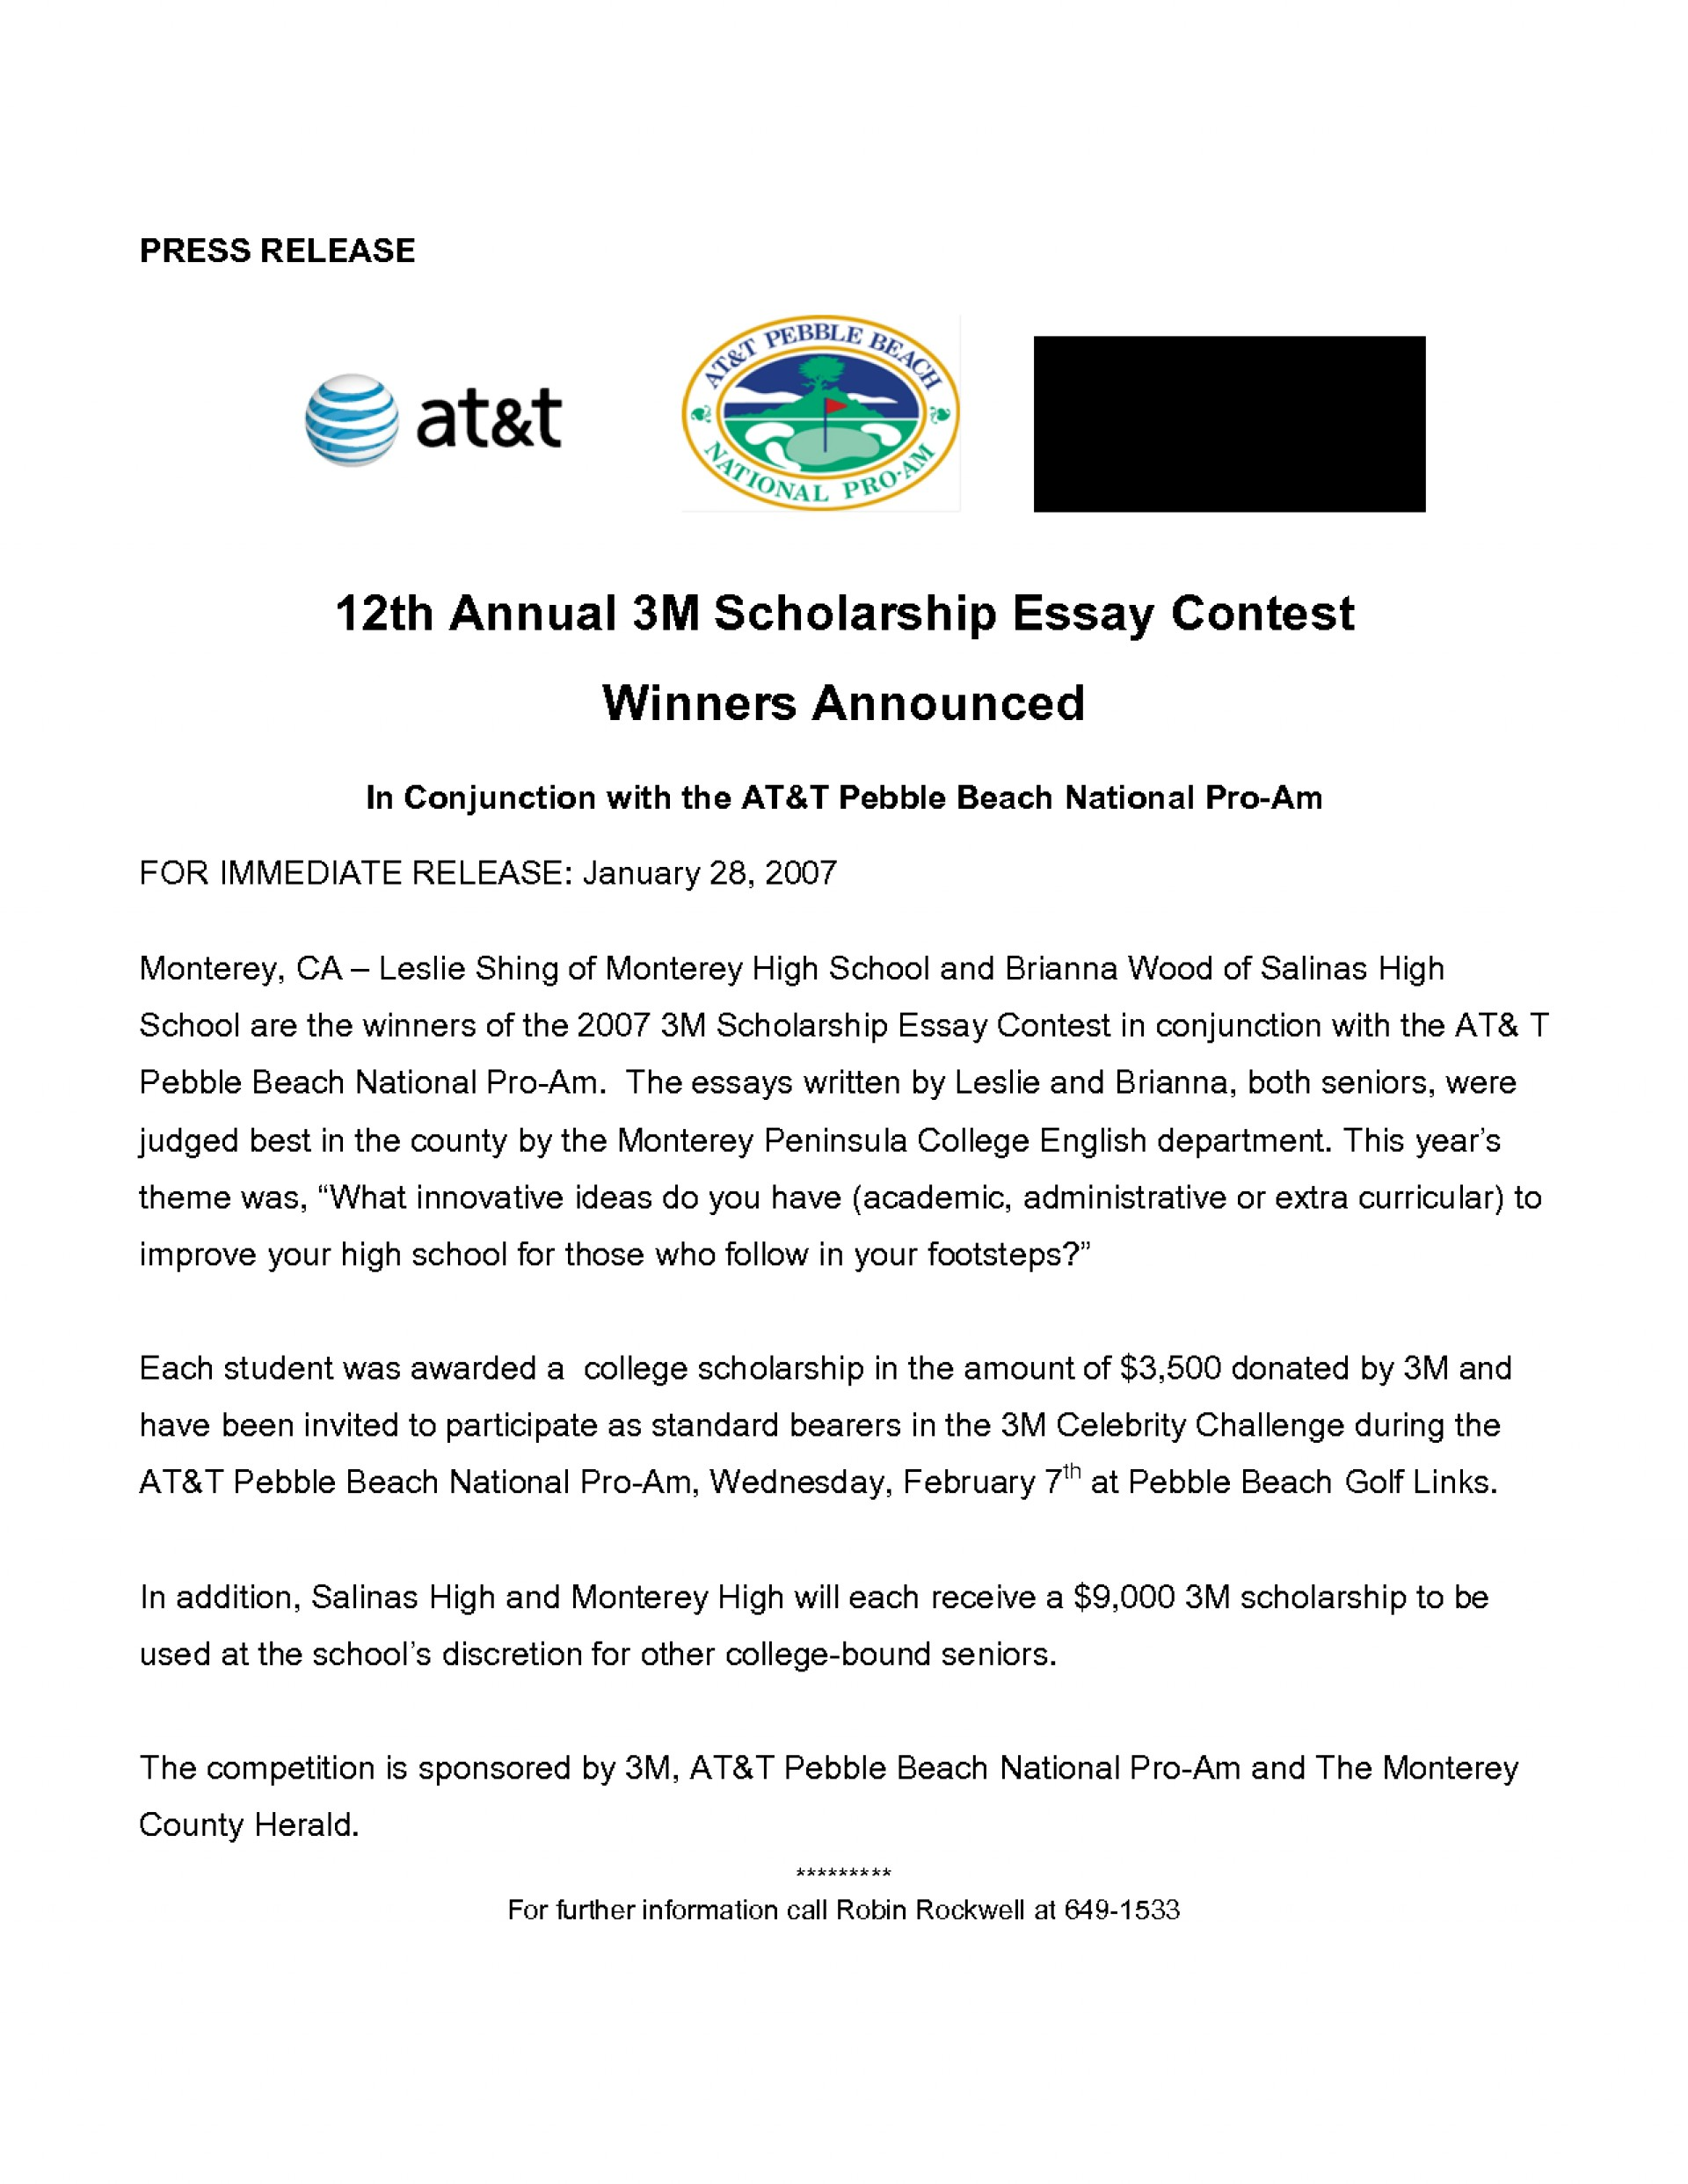 002 Essay Scholarships For High School Students Example Scholarship Application Help Contests Juniors 3 No Incredible Essays Examples 1920